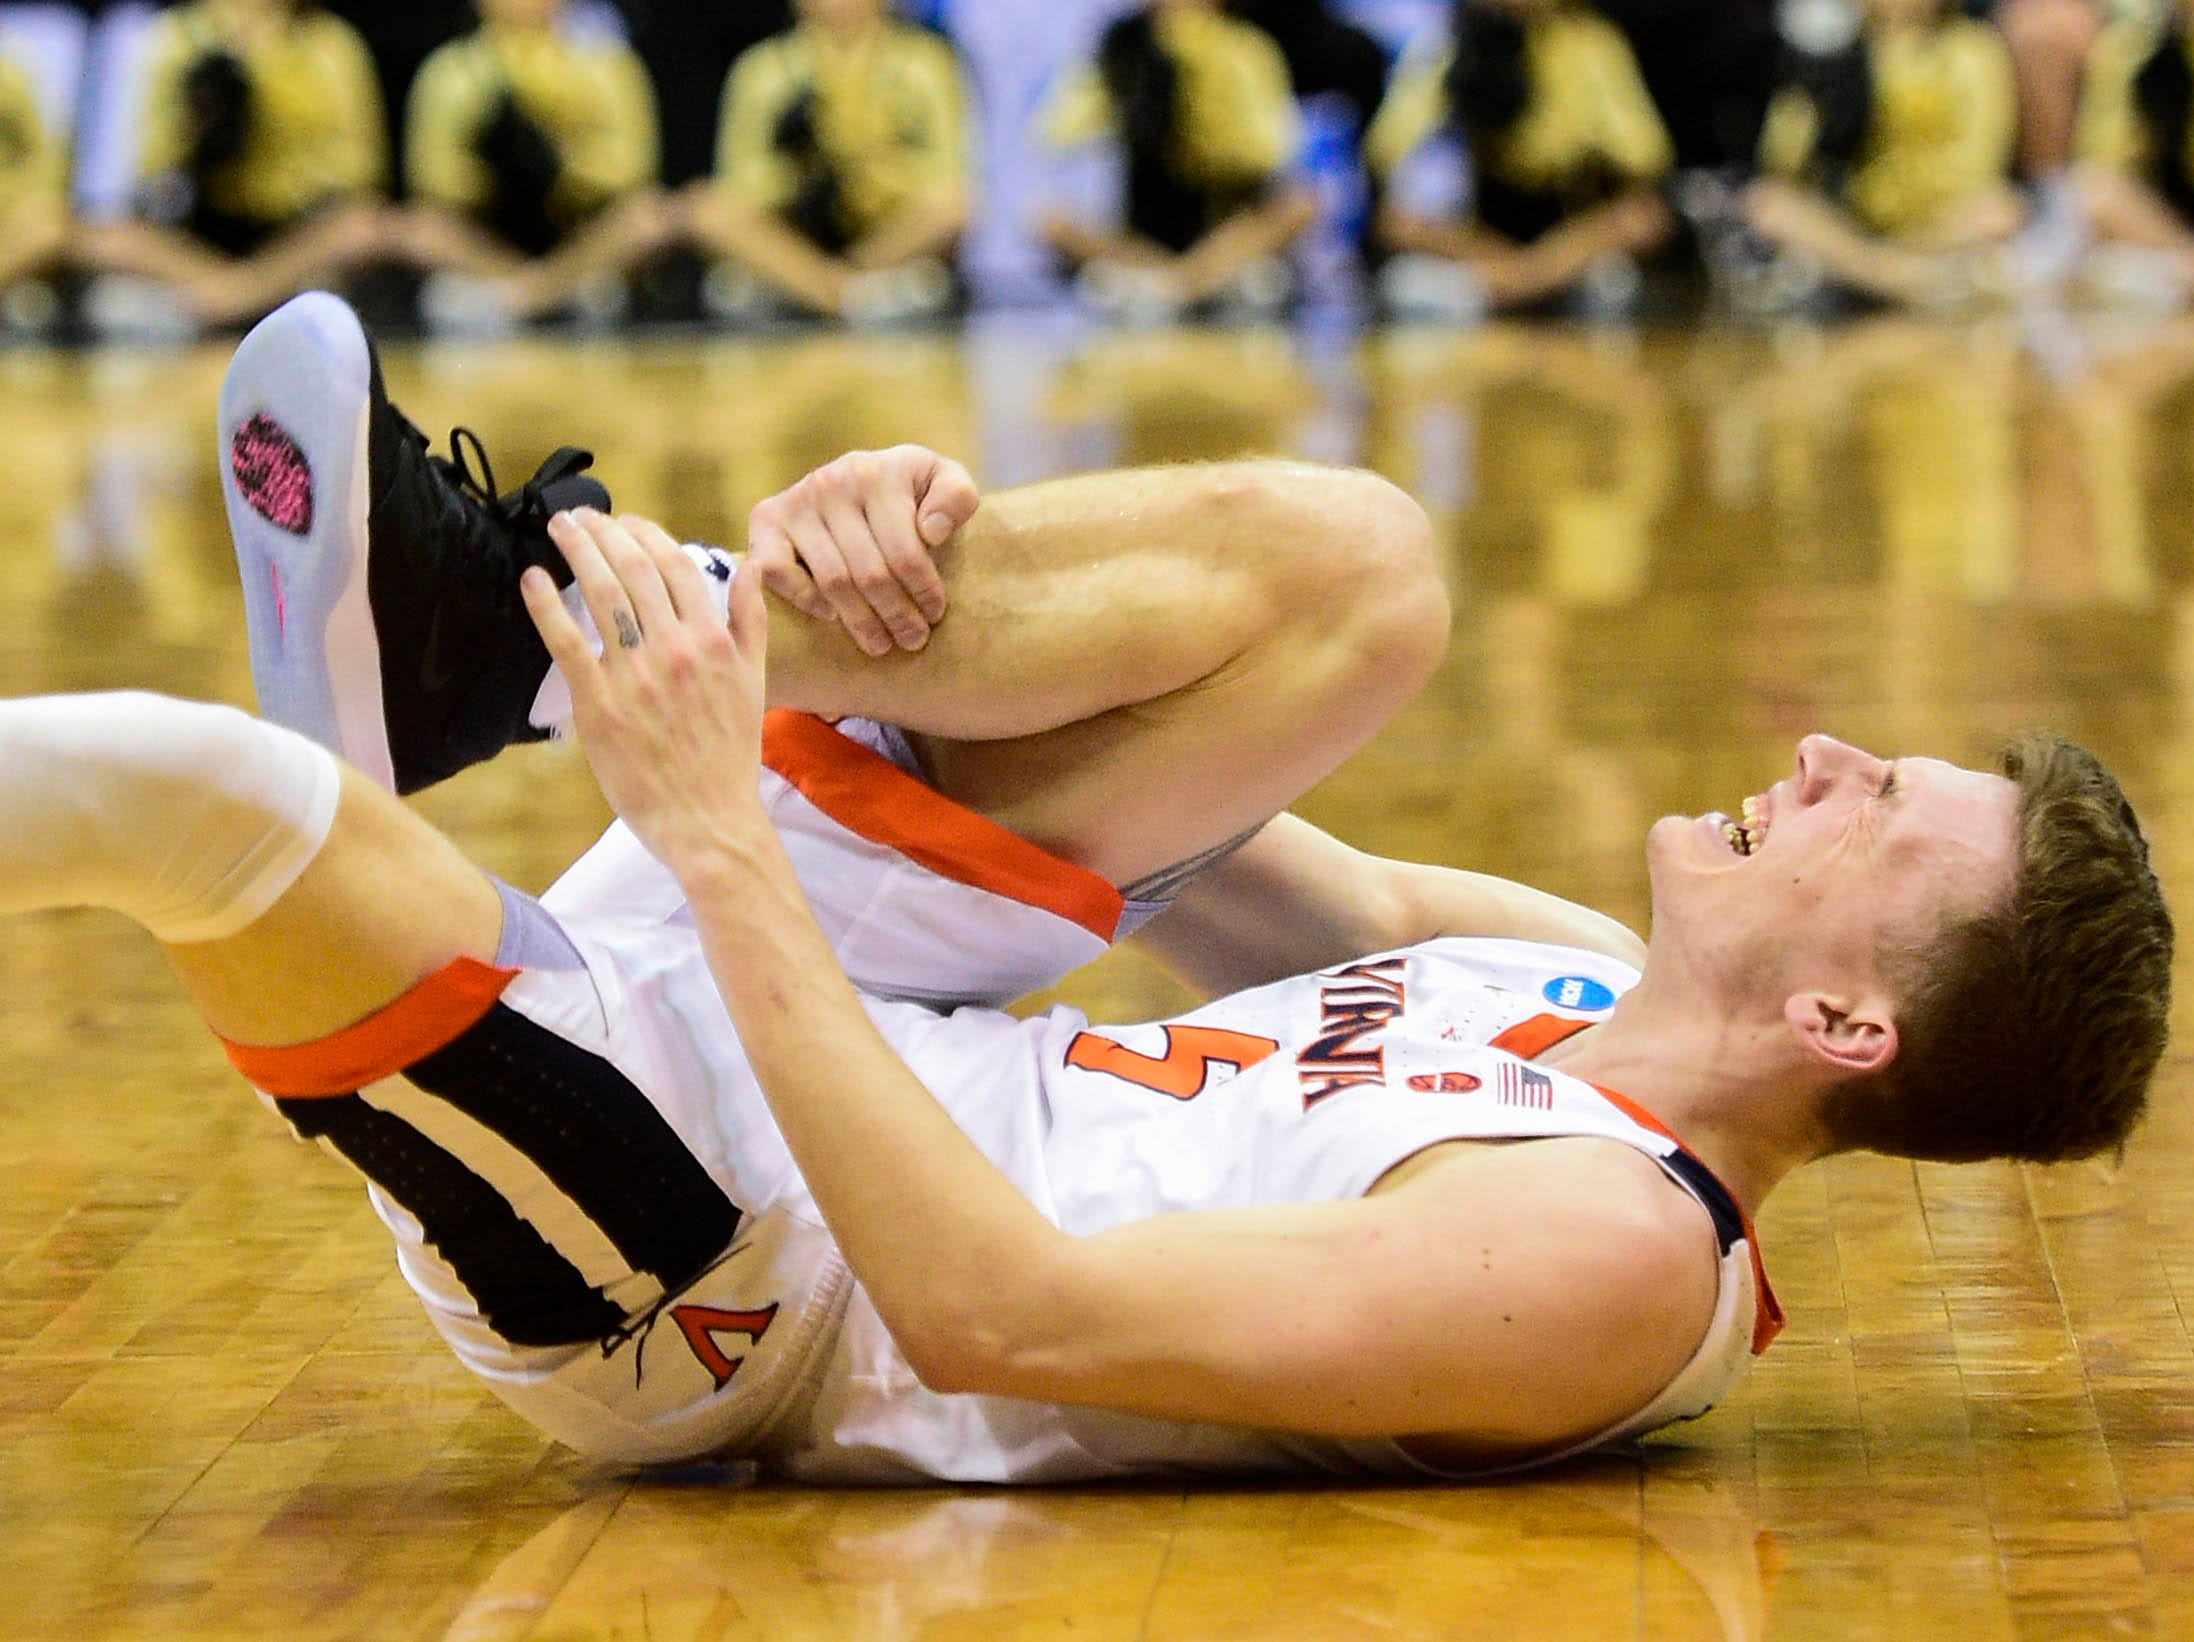 Mar 30, 2019; Louisville, KY, United States; Virginia Cavaliers guard Kyle Guy (5) reacts while holding his leg during the first half in the championship game against the Purdue Boilermakers of the south regional of the 2019 NCAA Tournament at KFC Yum Center. Mandatory Credit: Thomas J. Russo-USA TODAY Sports